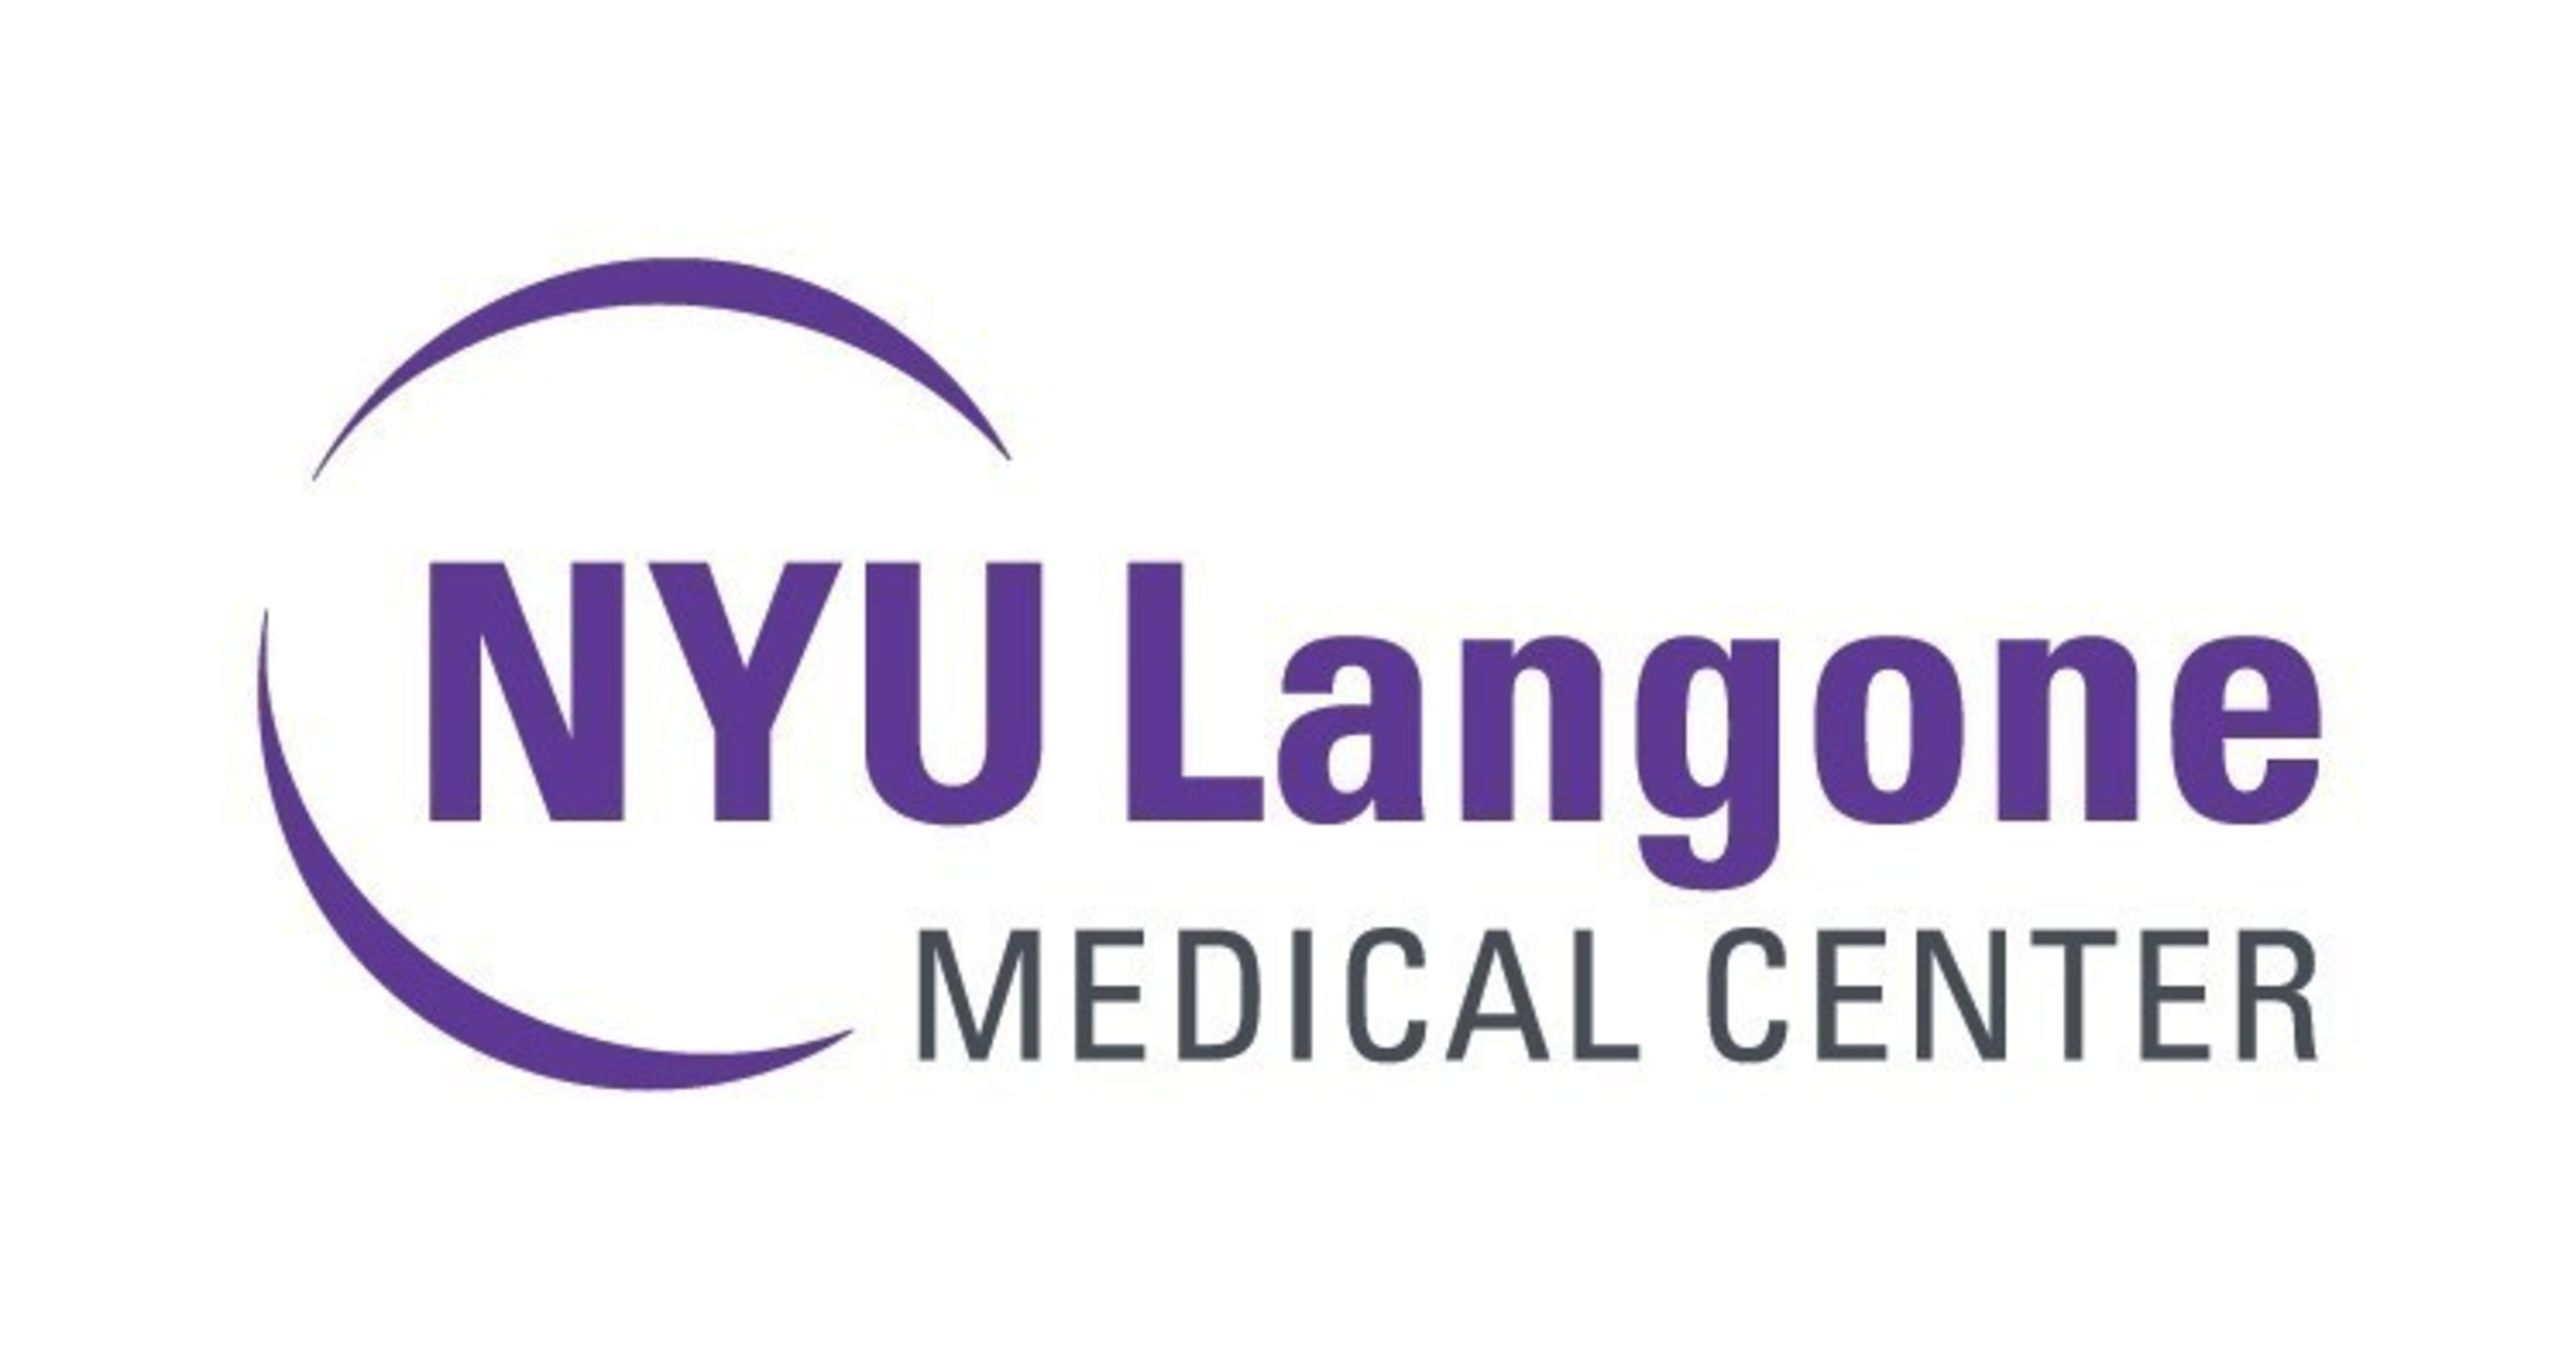 Tisch Hospital Ranking Nyu Langone Medical Center Ranks Top 10 In The Nation On U S News